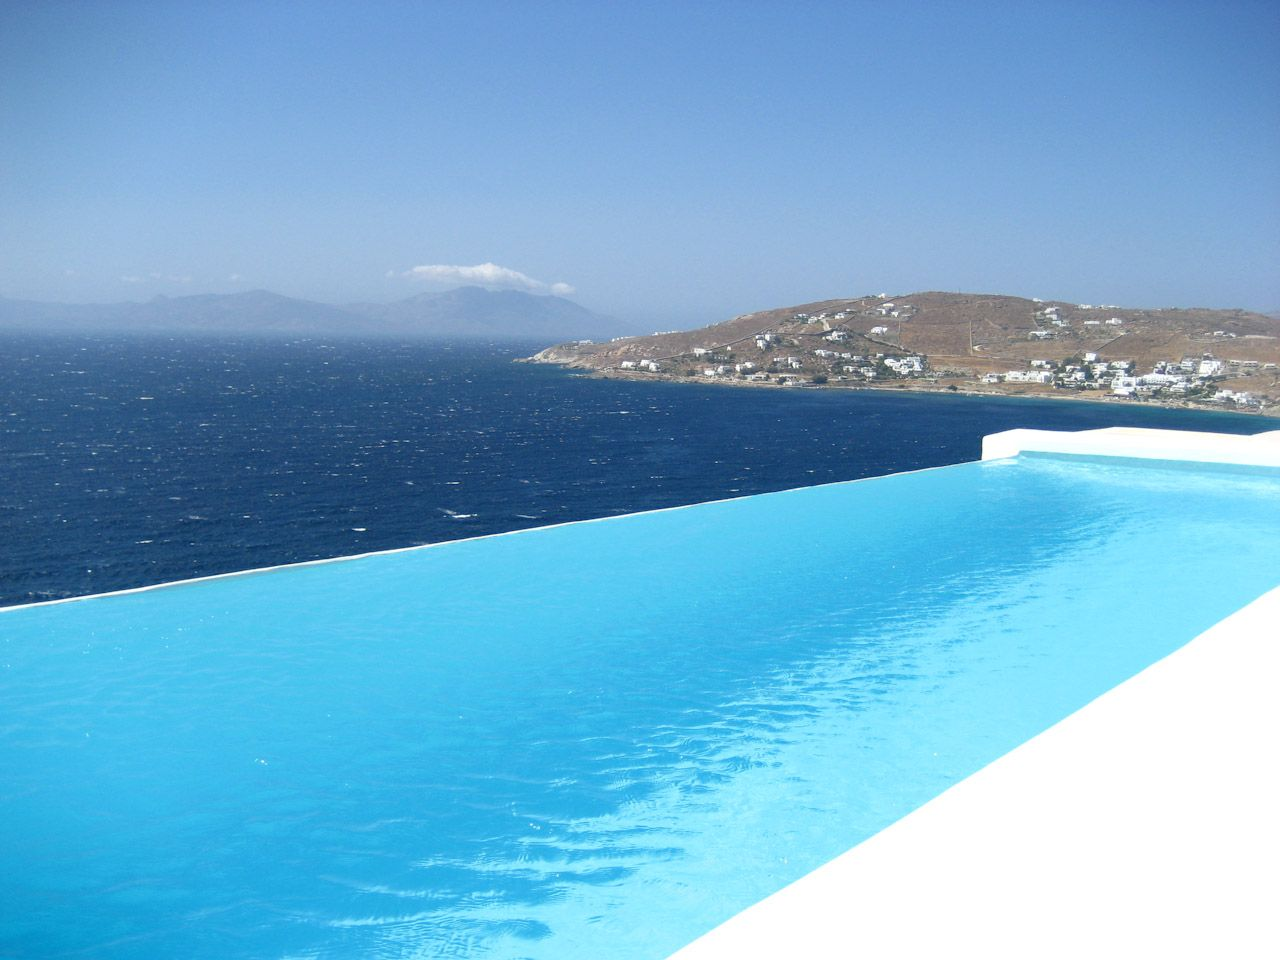 Infinity Pool Designs infinity pool design Amazing Infinity Swimming Pool Designs Remodel Interior Planning House Ideas Top With Infinity Swimming Pool Designs